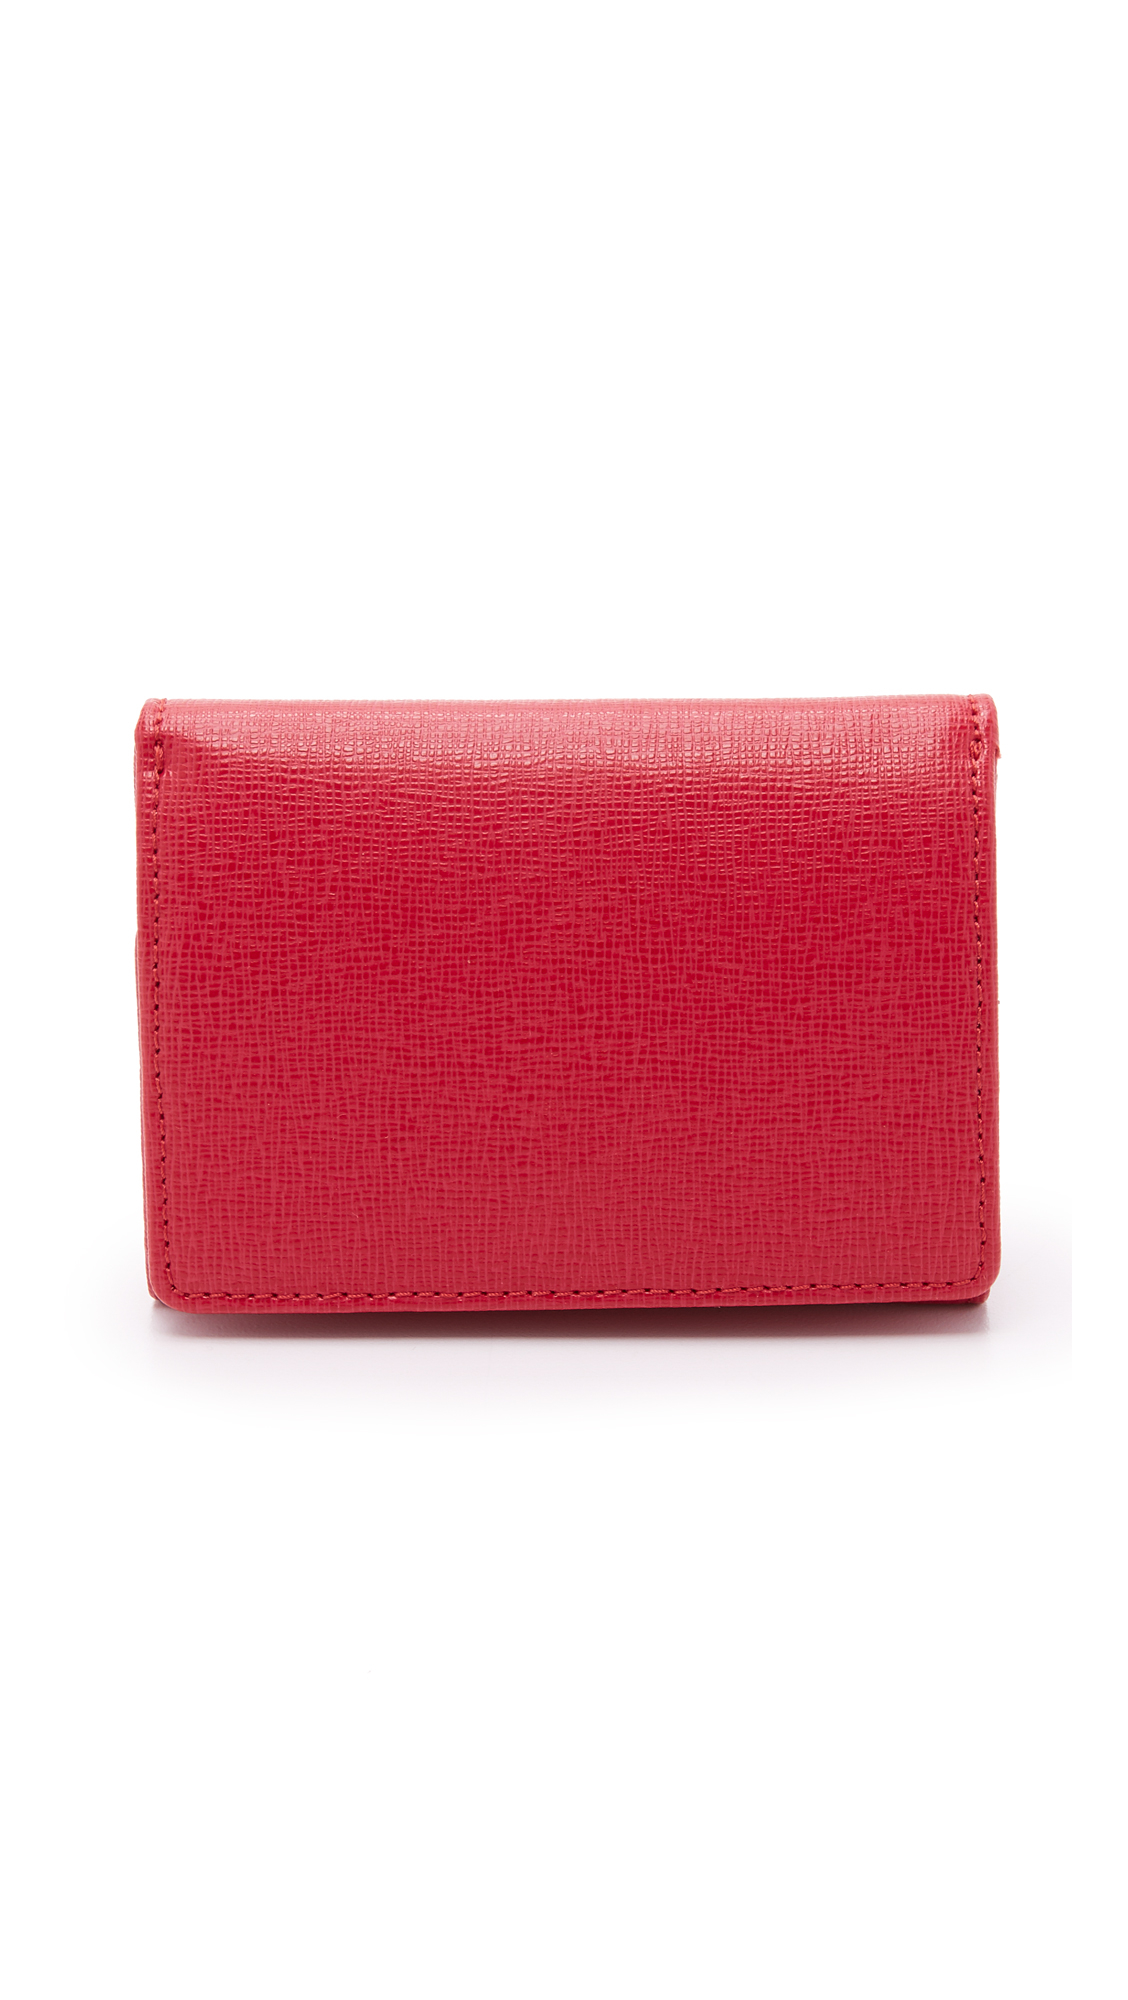 Furla Babylon Small Trifold Wallet - Ruby in Red   Lyst